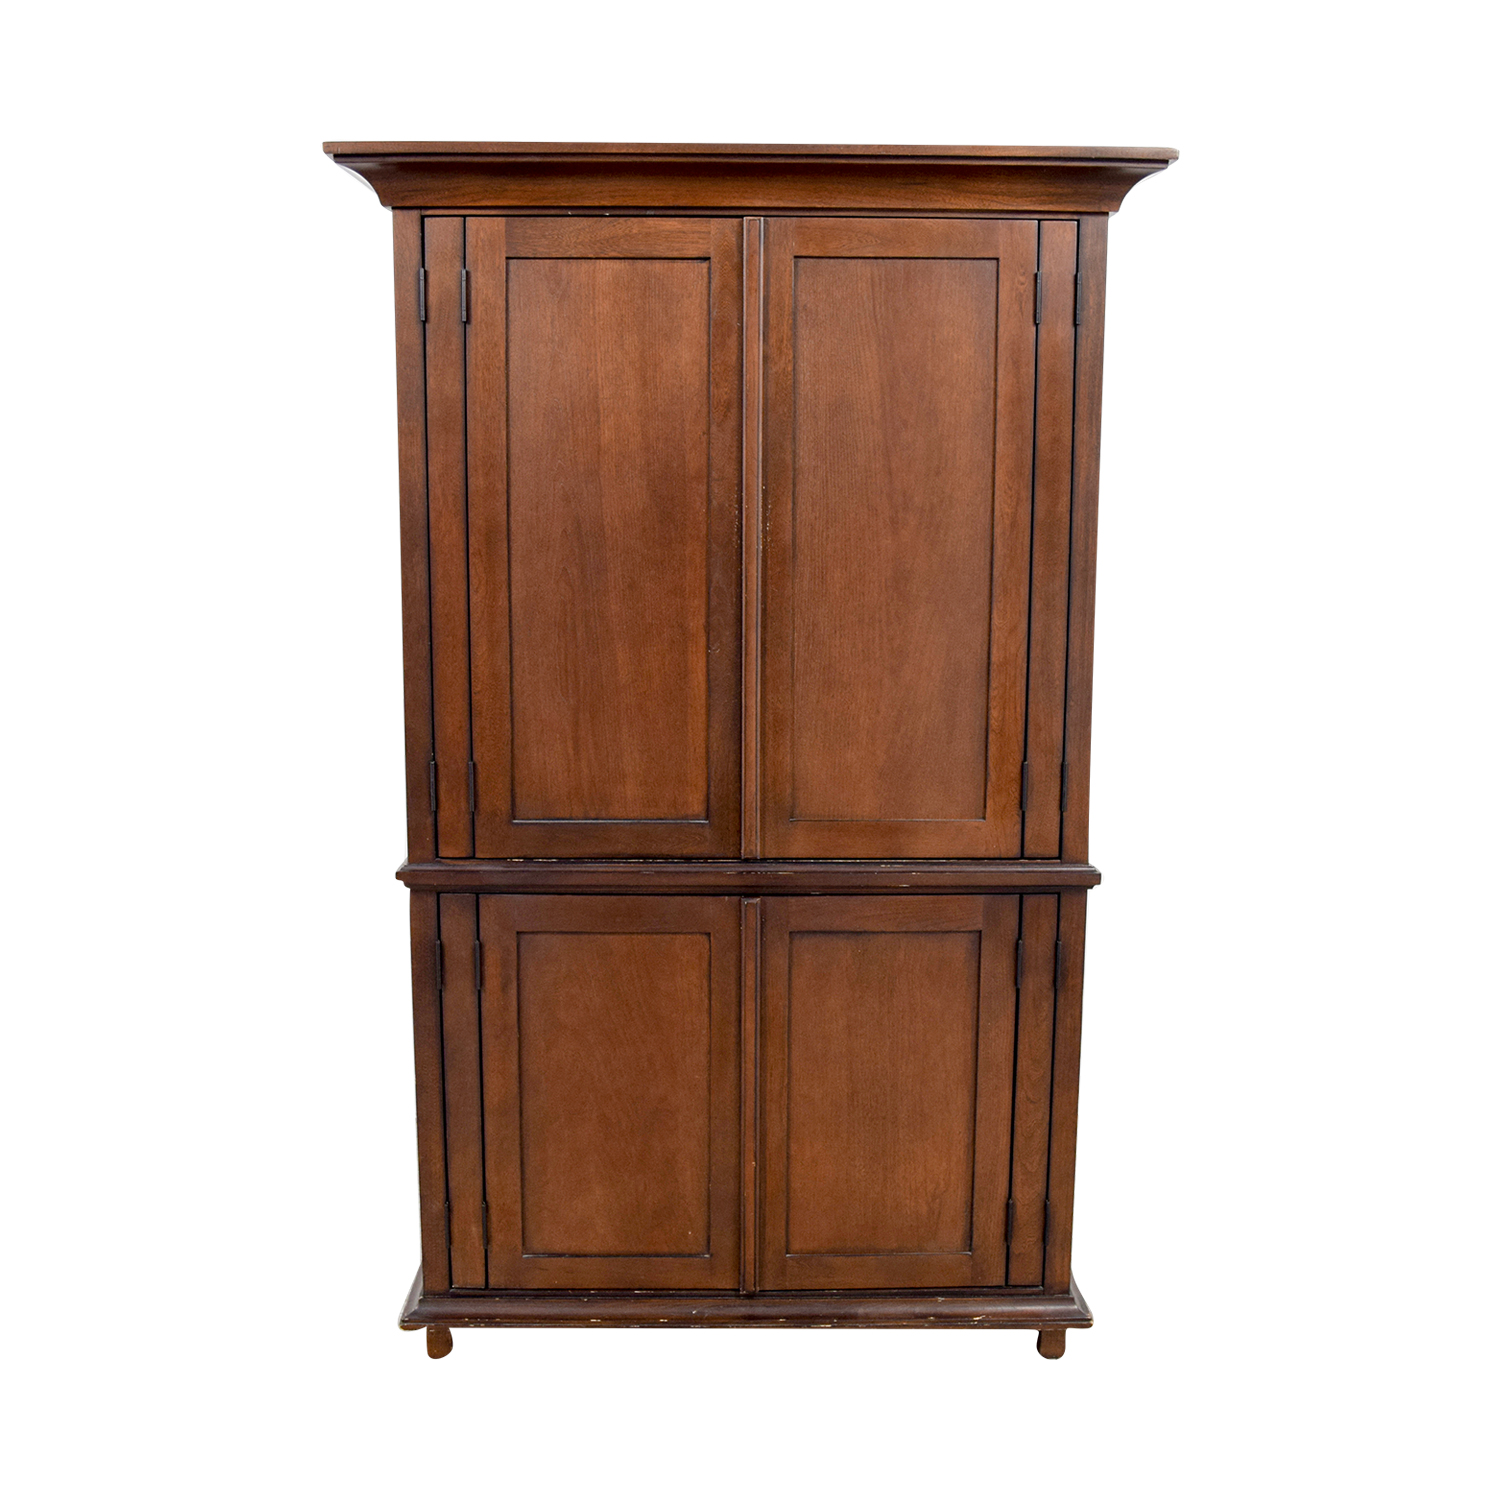 Delicieux 75% OFF   Pottery Barn Pottery Barn Armoire With Shelves / Storage